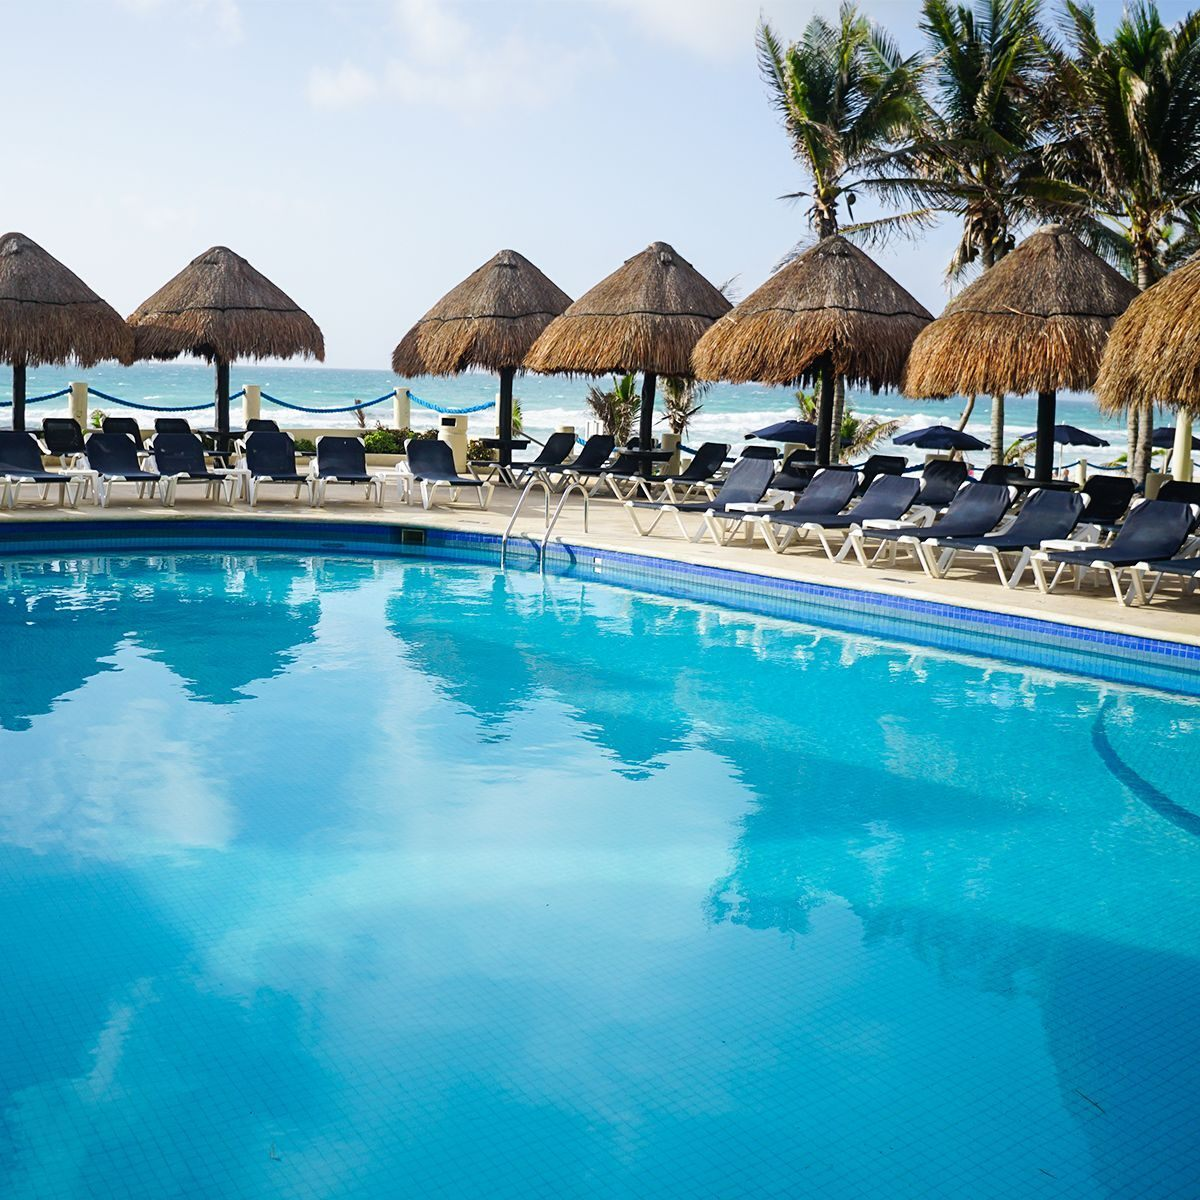 Beach hotels with a swimming pool in Cancún, Mexico